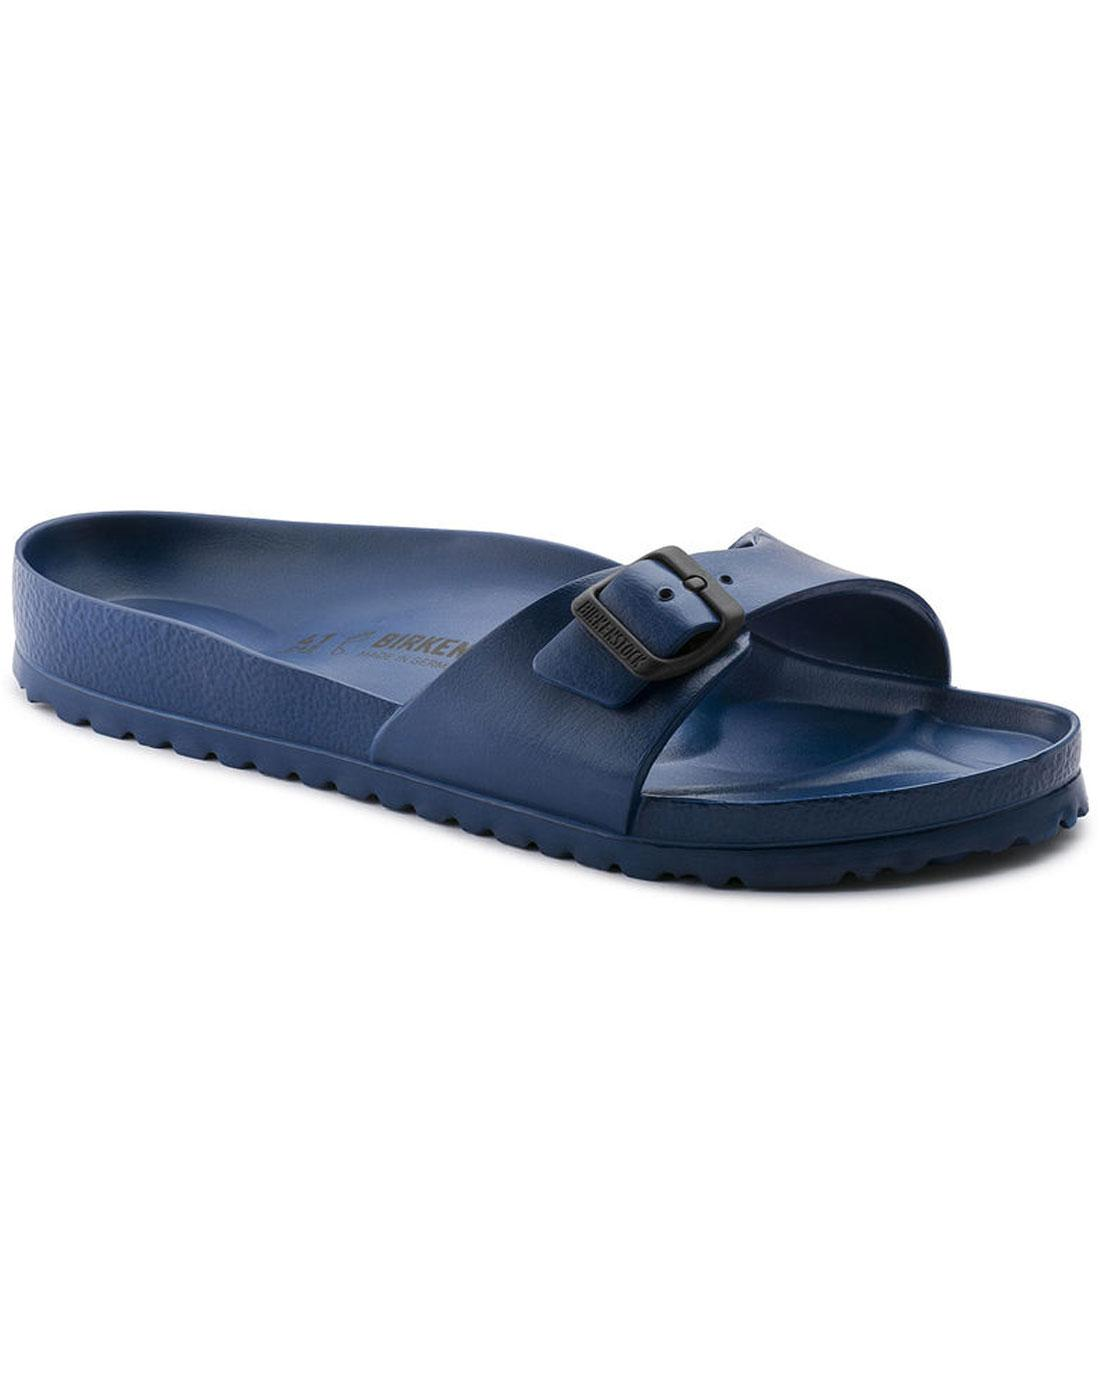 Madrid EVA BIRKENSTOCK Retro One Strap Sandals (N)